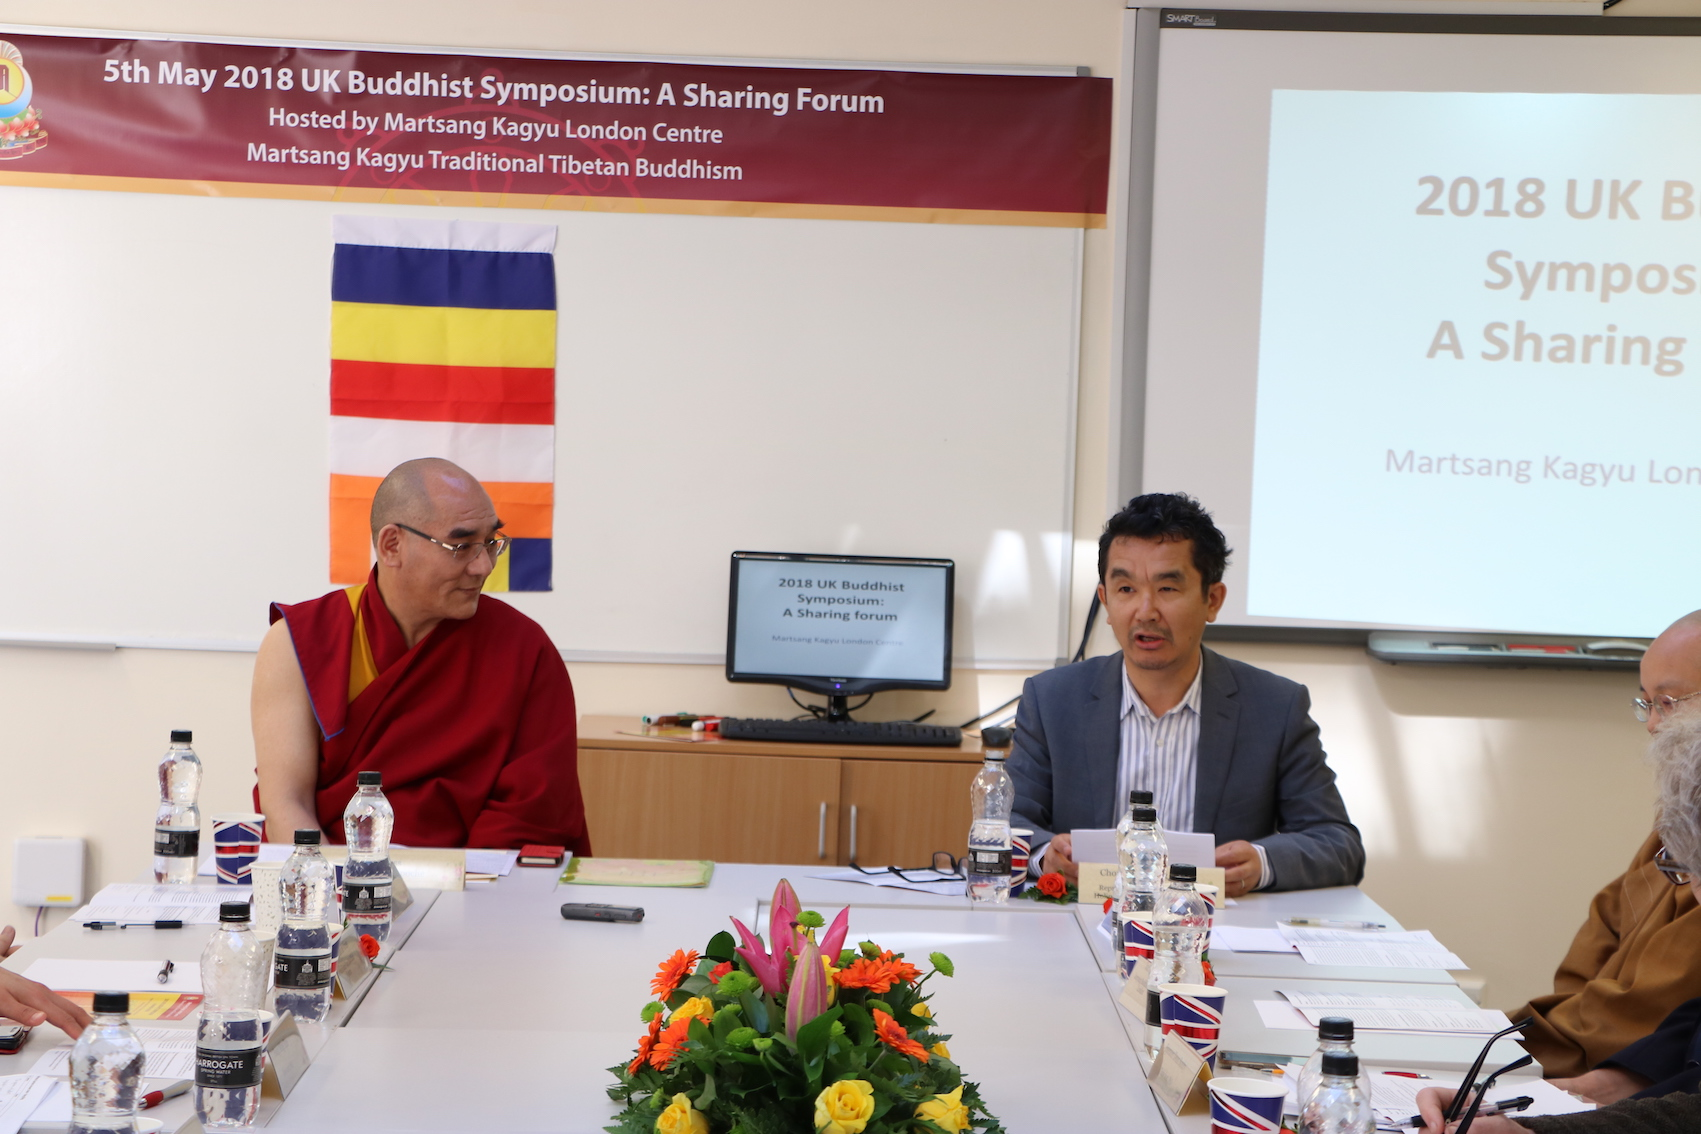 Representative of the Office of the Dalai Lama gives a talk at the beginning of the UK Buddhist Symposium hosted by Martsang Kagyu London Centre